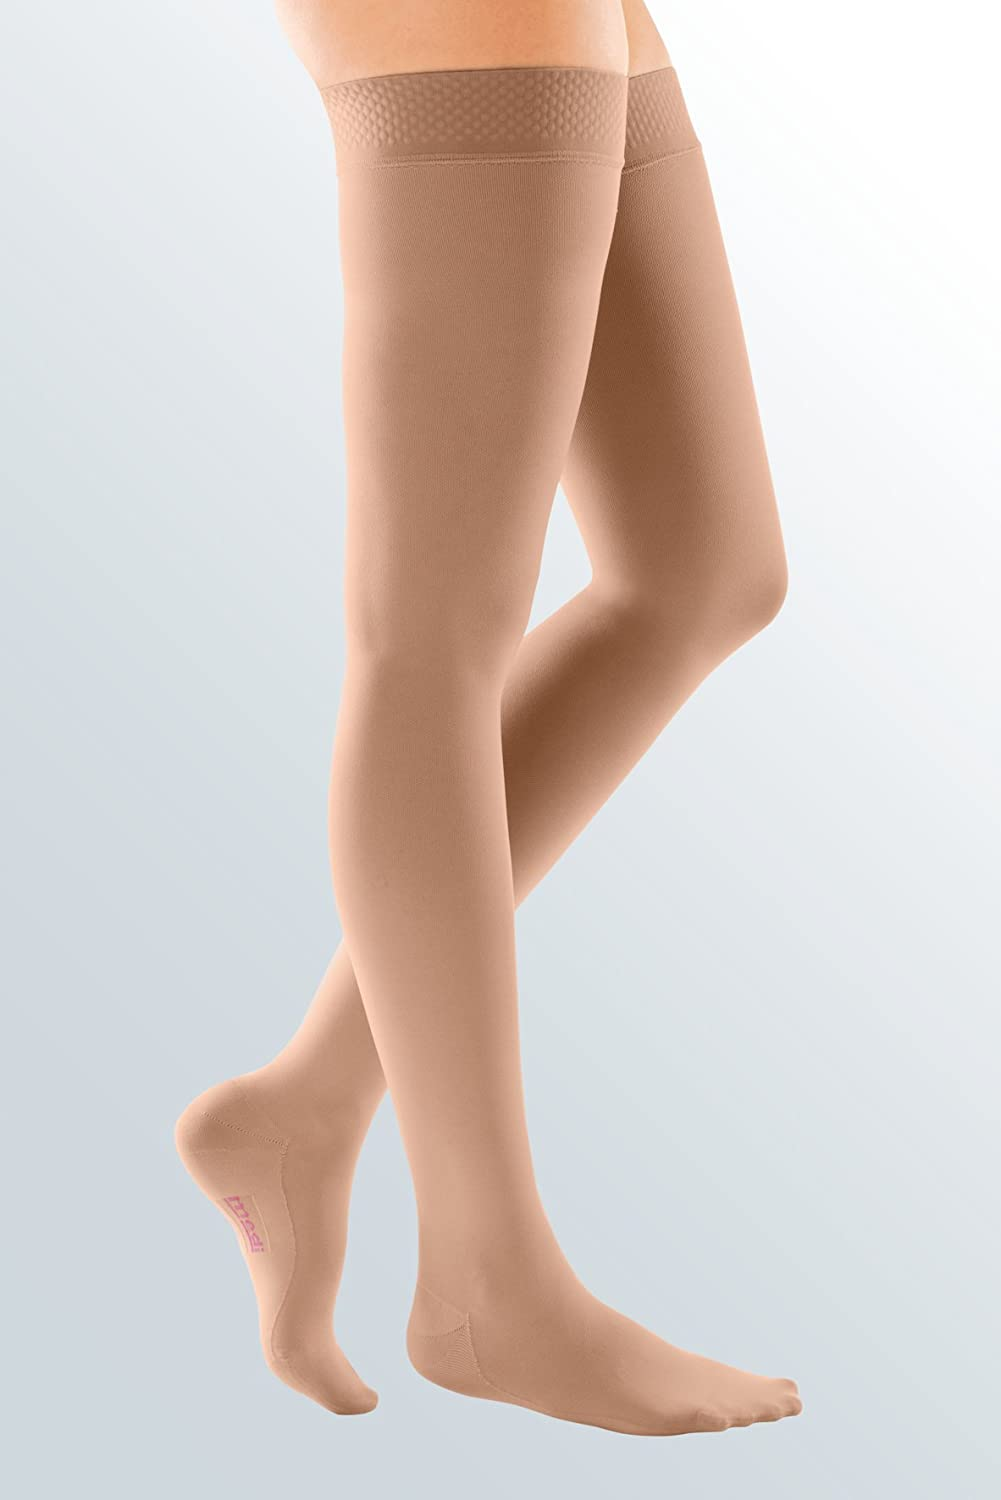 mediven Comfort, 15-20 mmHg, Thigh High Compression Stockings, Closed Toe